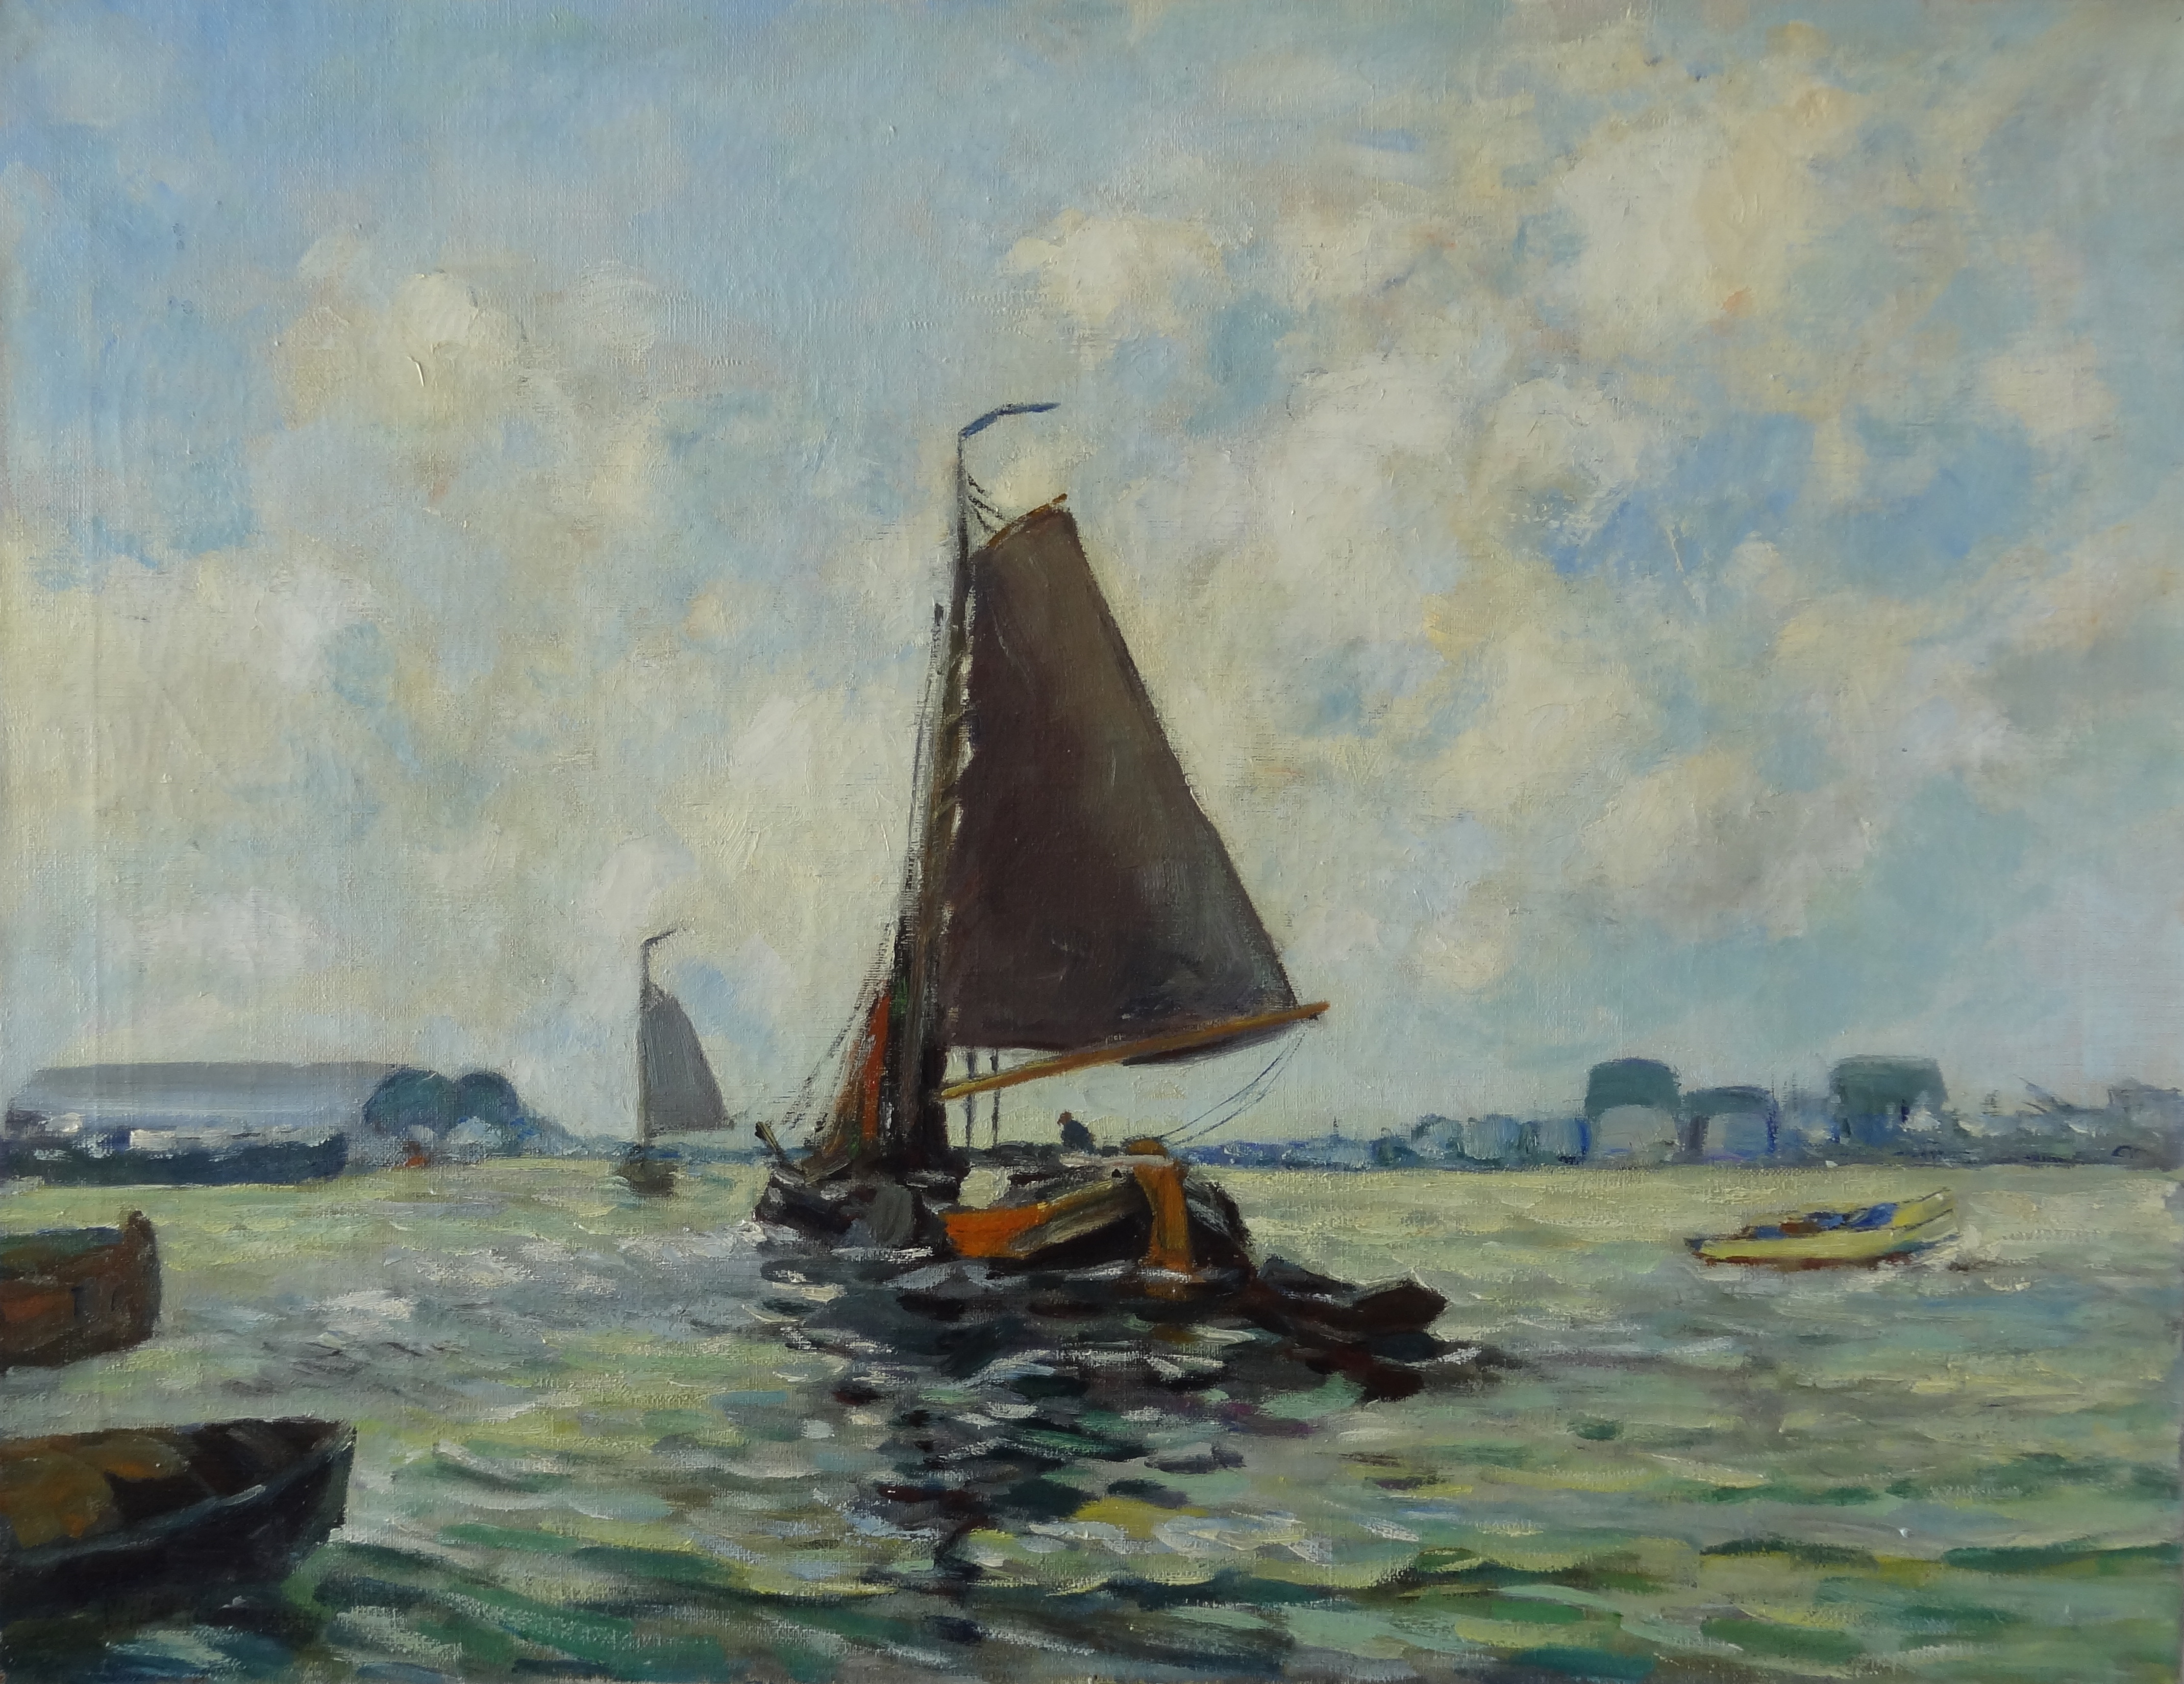 Unknown - Sailingboats in harbor of Amsterdam